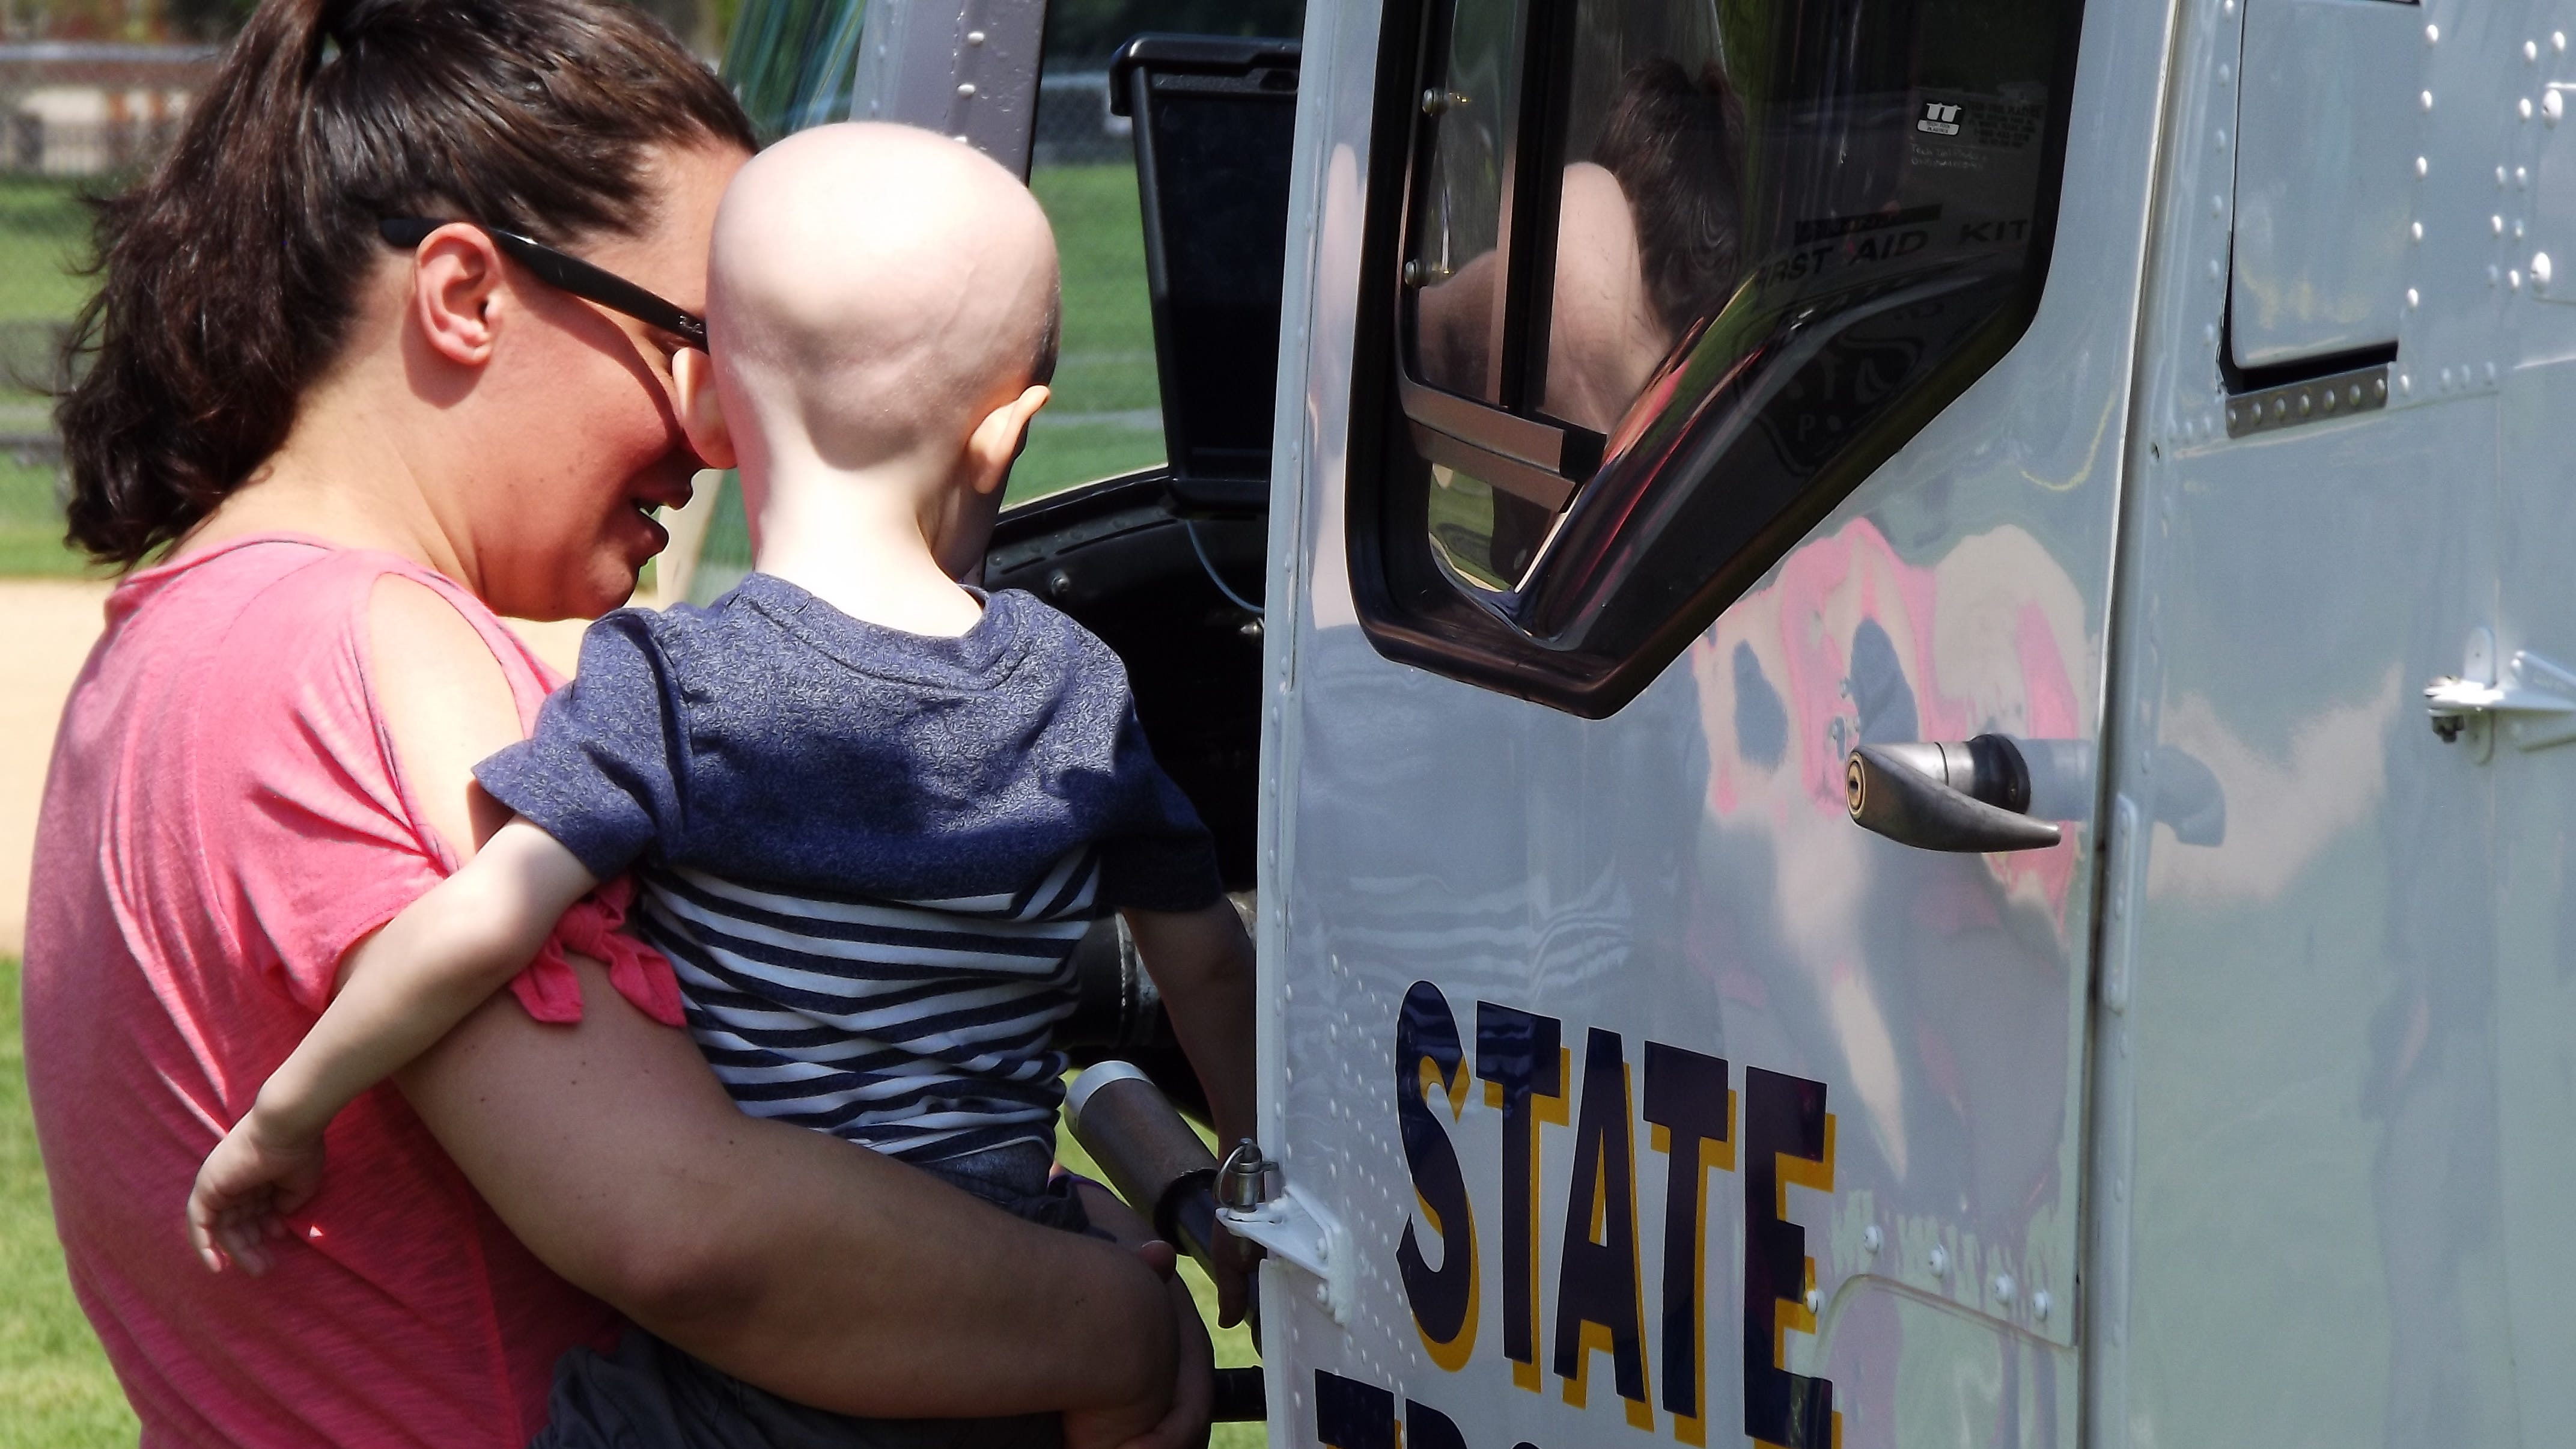 New Jersey police send helicopter to lift spirits of Ridgewood preschooler with cancer